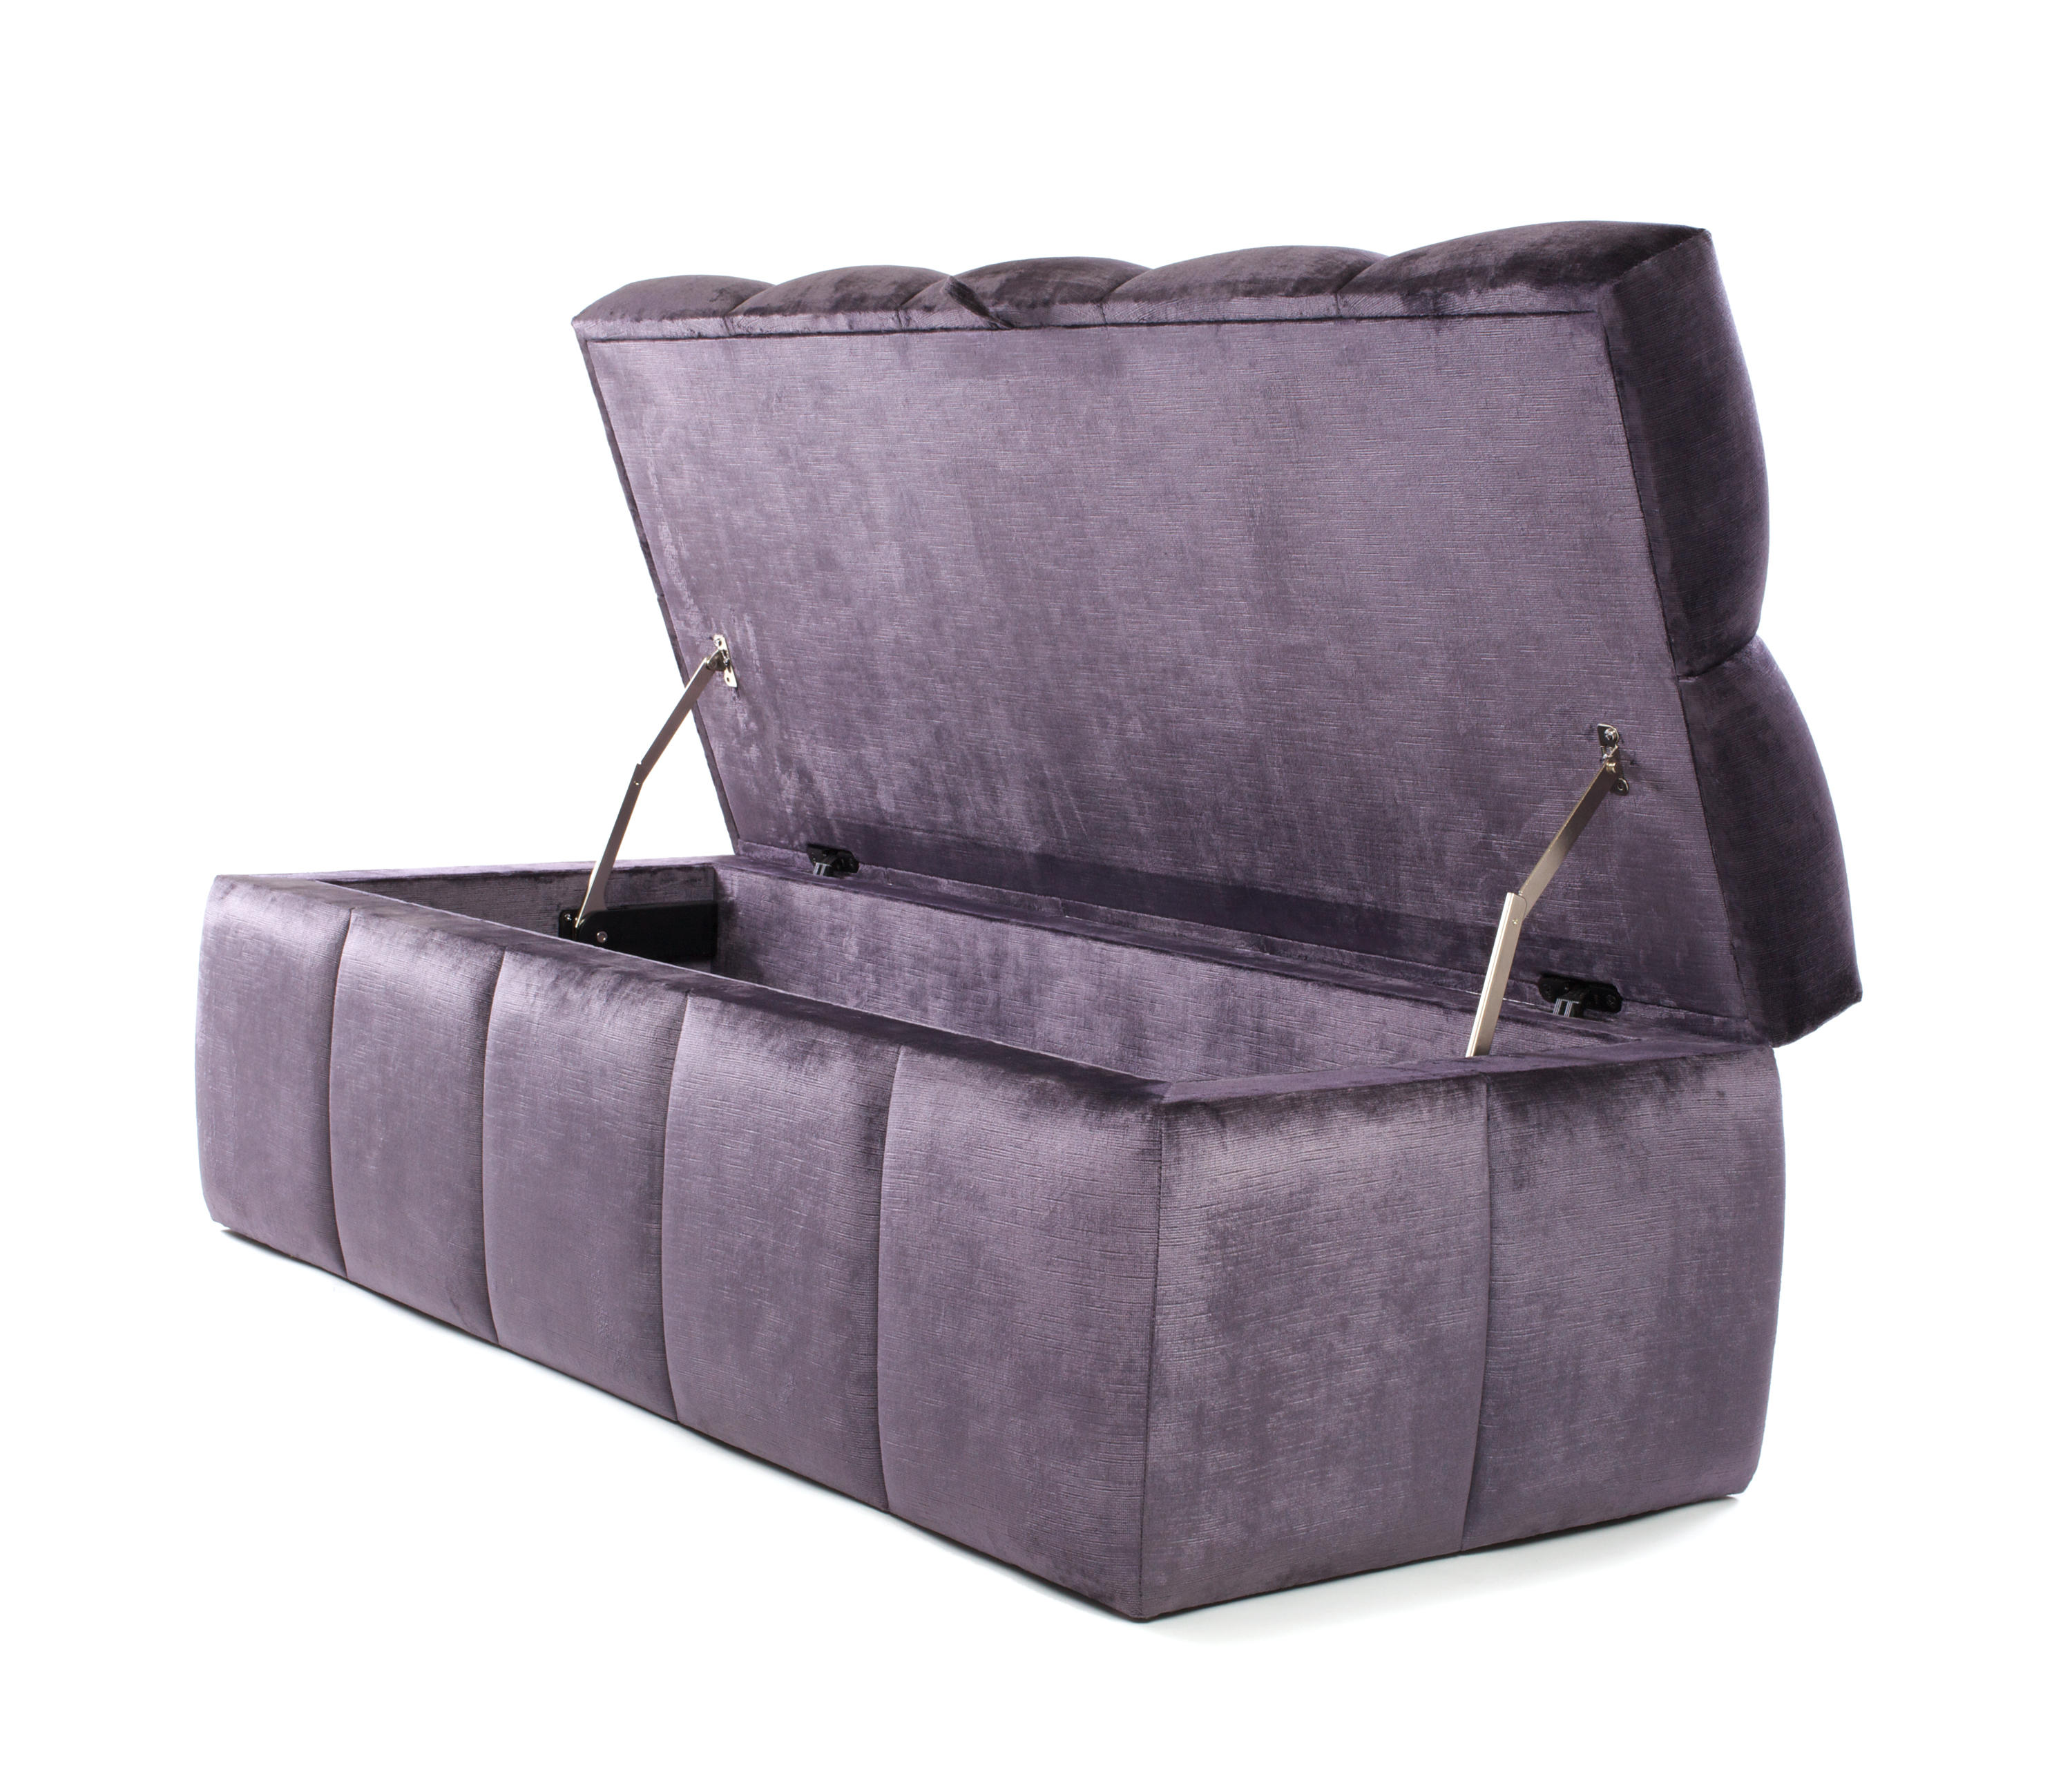 Awesome Tufted Storage Ottoman Poufs Polsterhocker Von Naula Gmtry Best Dining Table And Chair Ideas Images Gmtryco